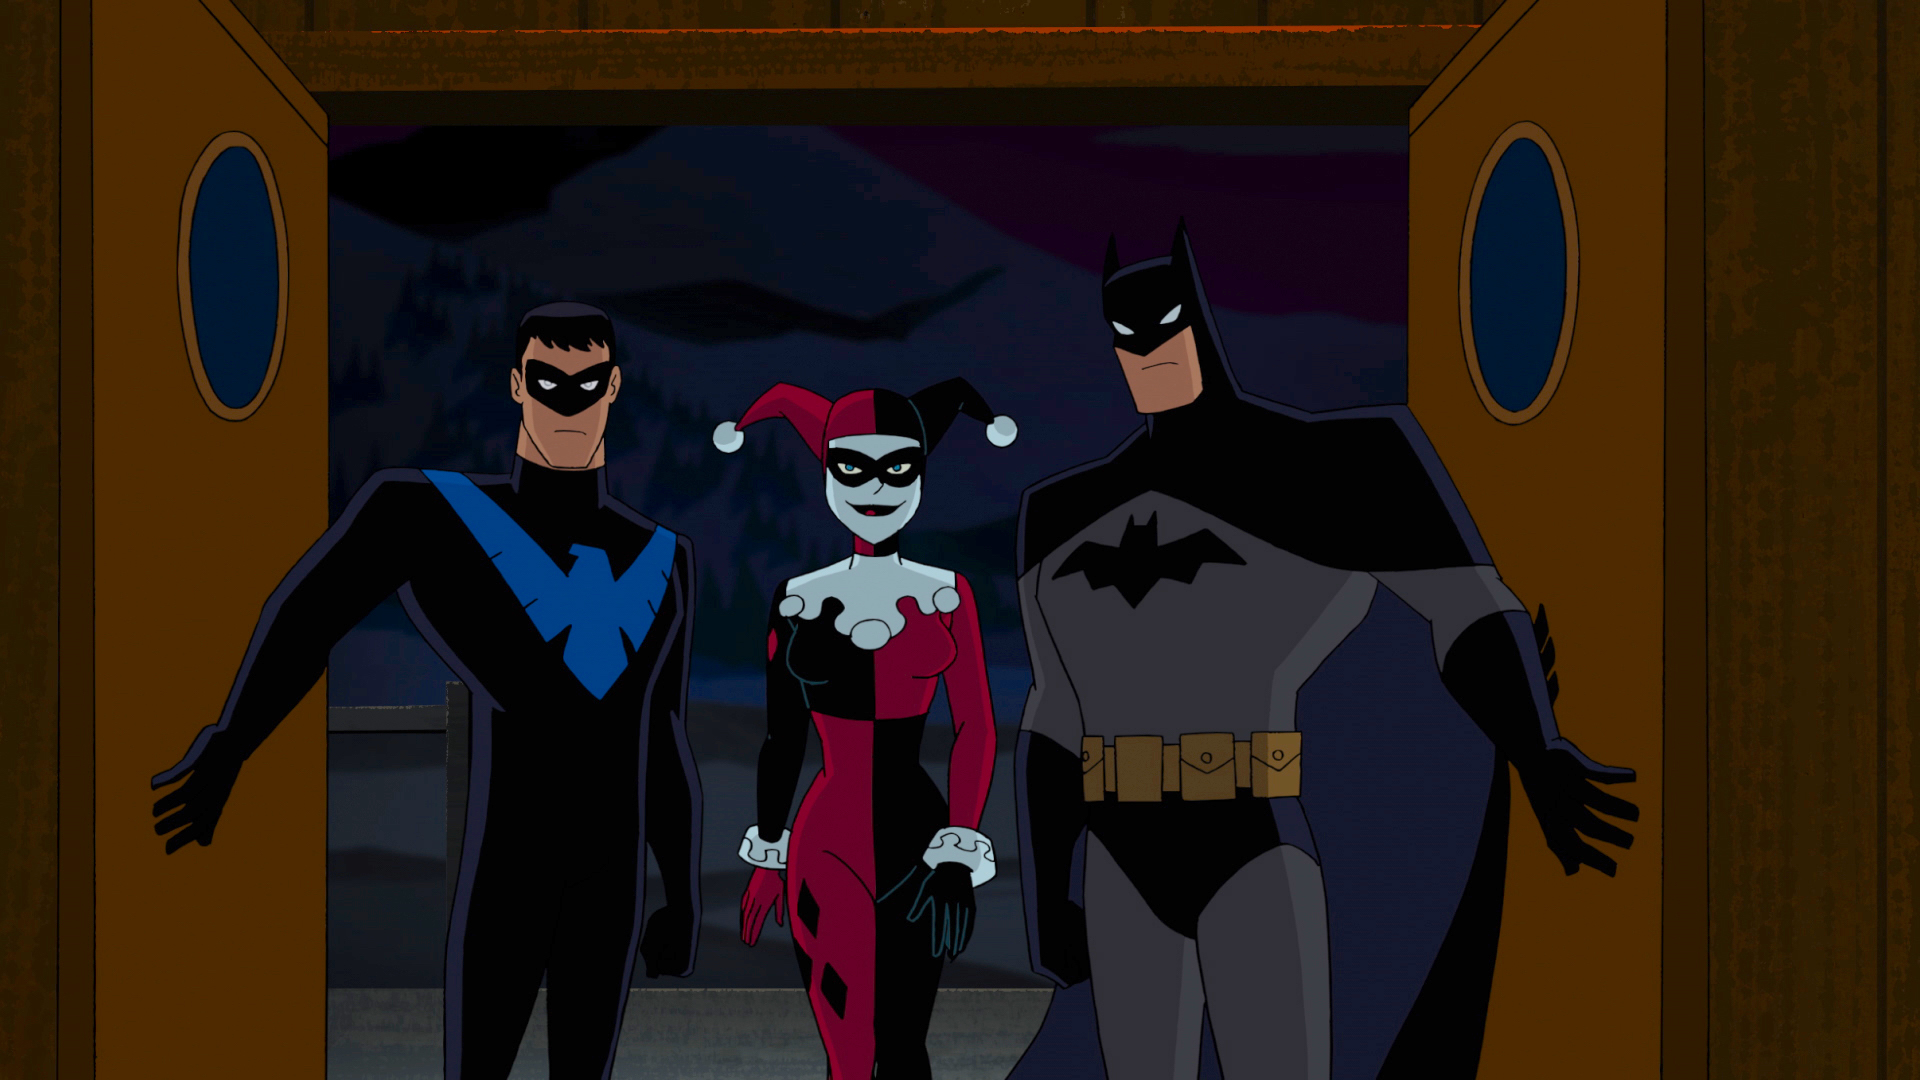 Nightwing, Harley Quinn and Batman. BATMAN and all related characters and elements are trademarks of ©DC Comics. (s17)